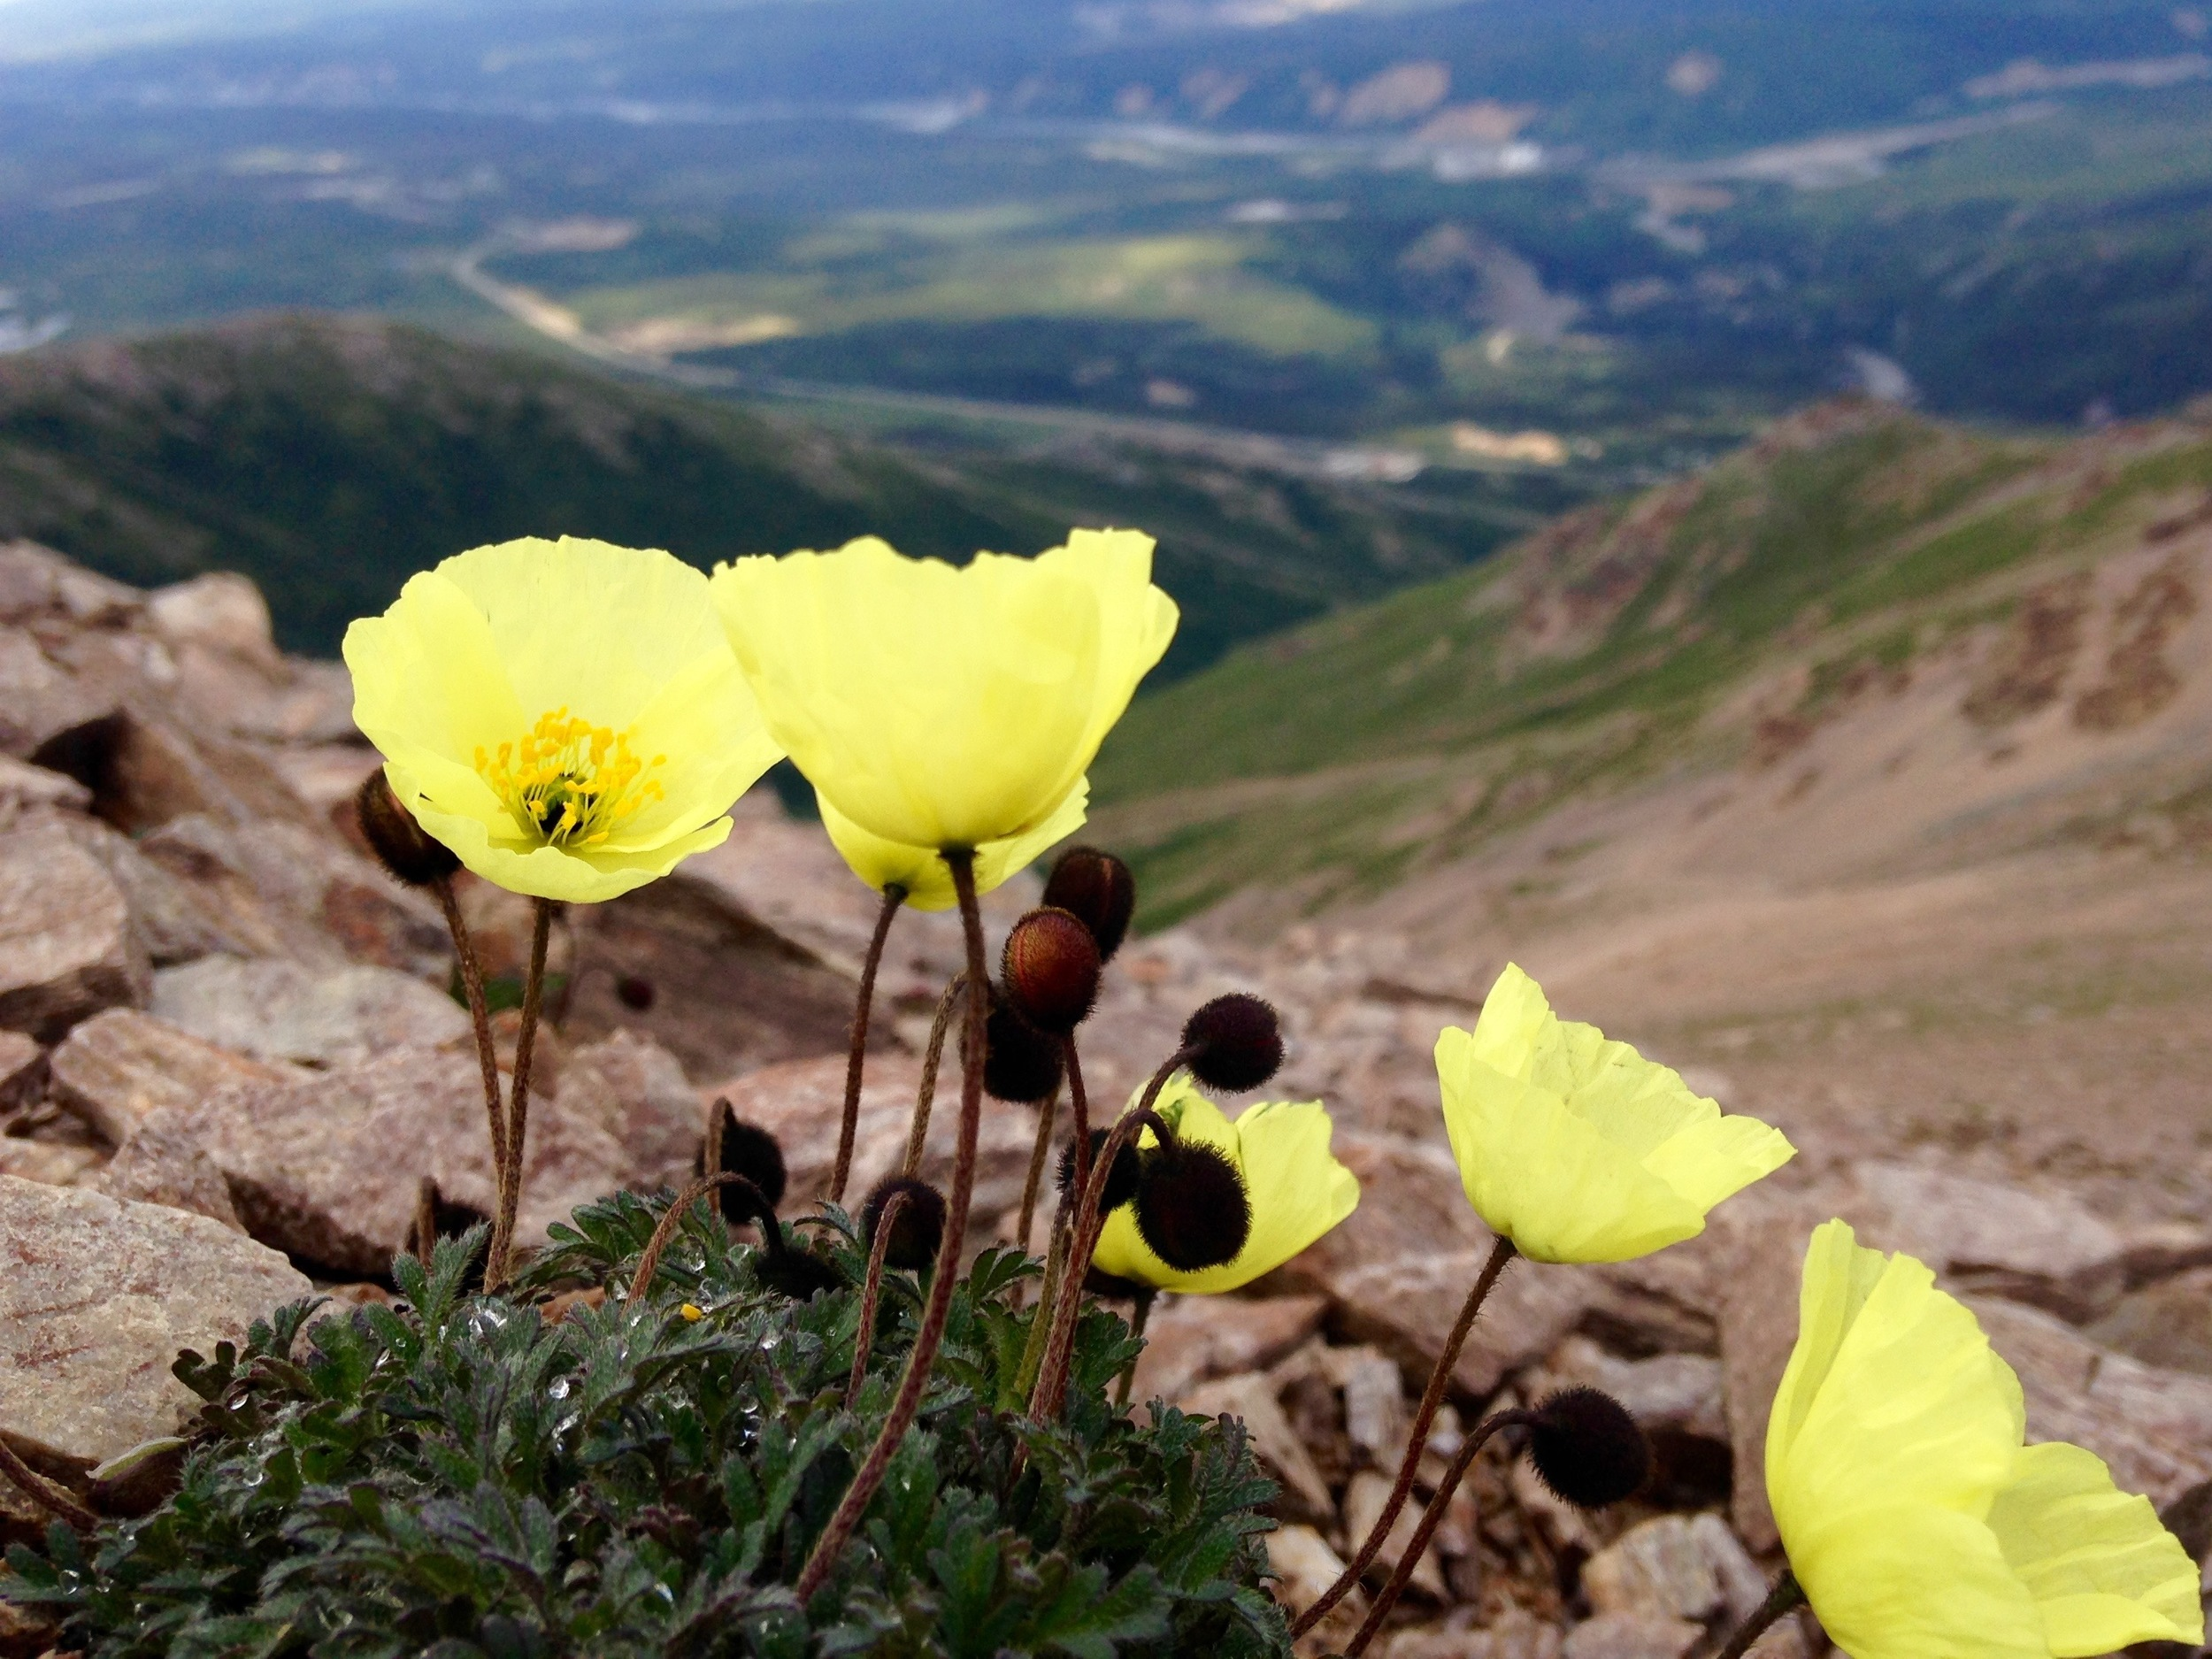 Poppies on Mount Healy. I've seen poppies before but I've neer seen poppies that are Dayglo yellow! Papaver Macounii.